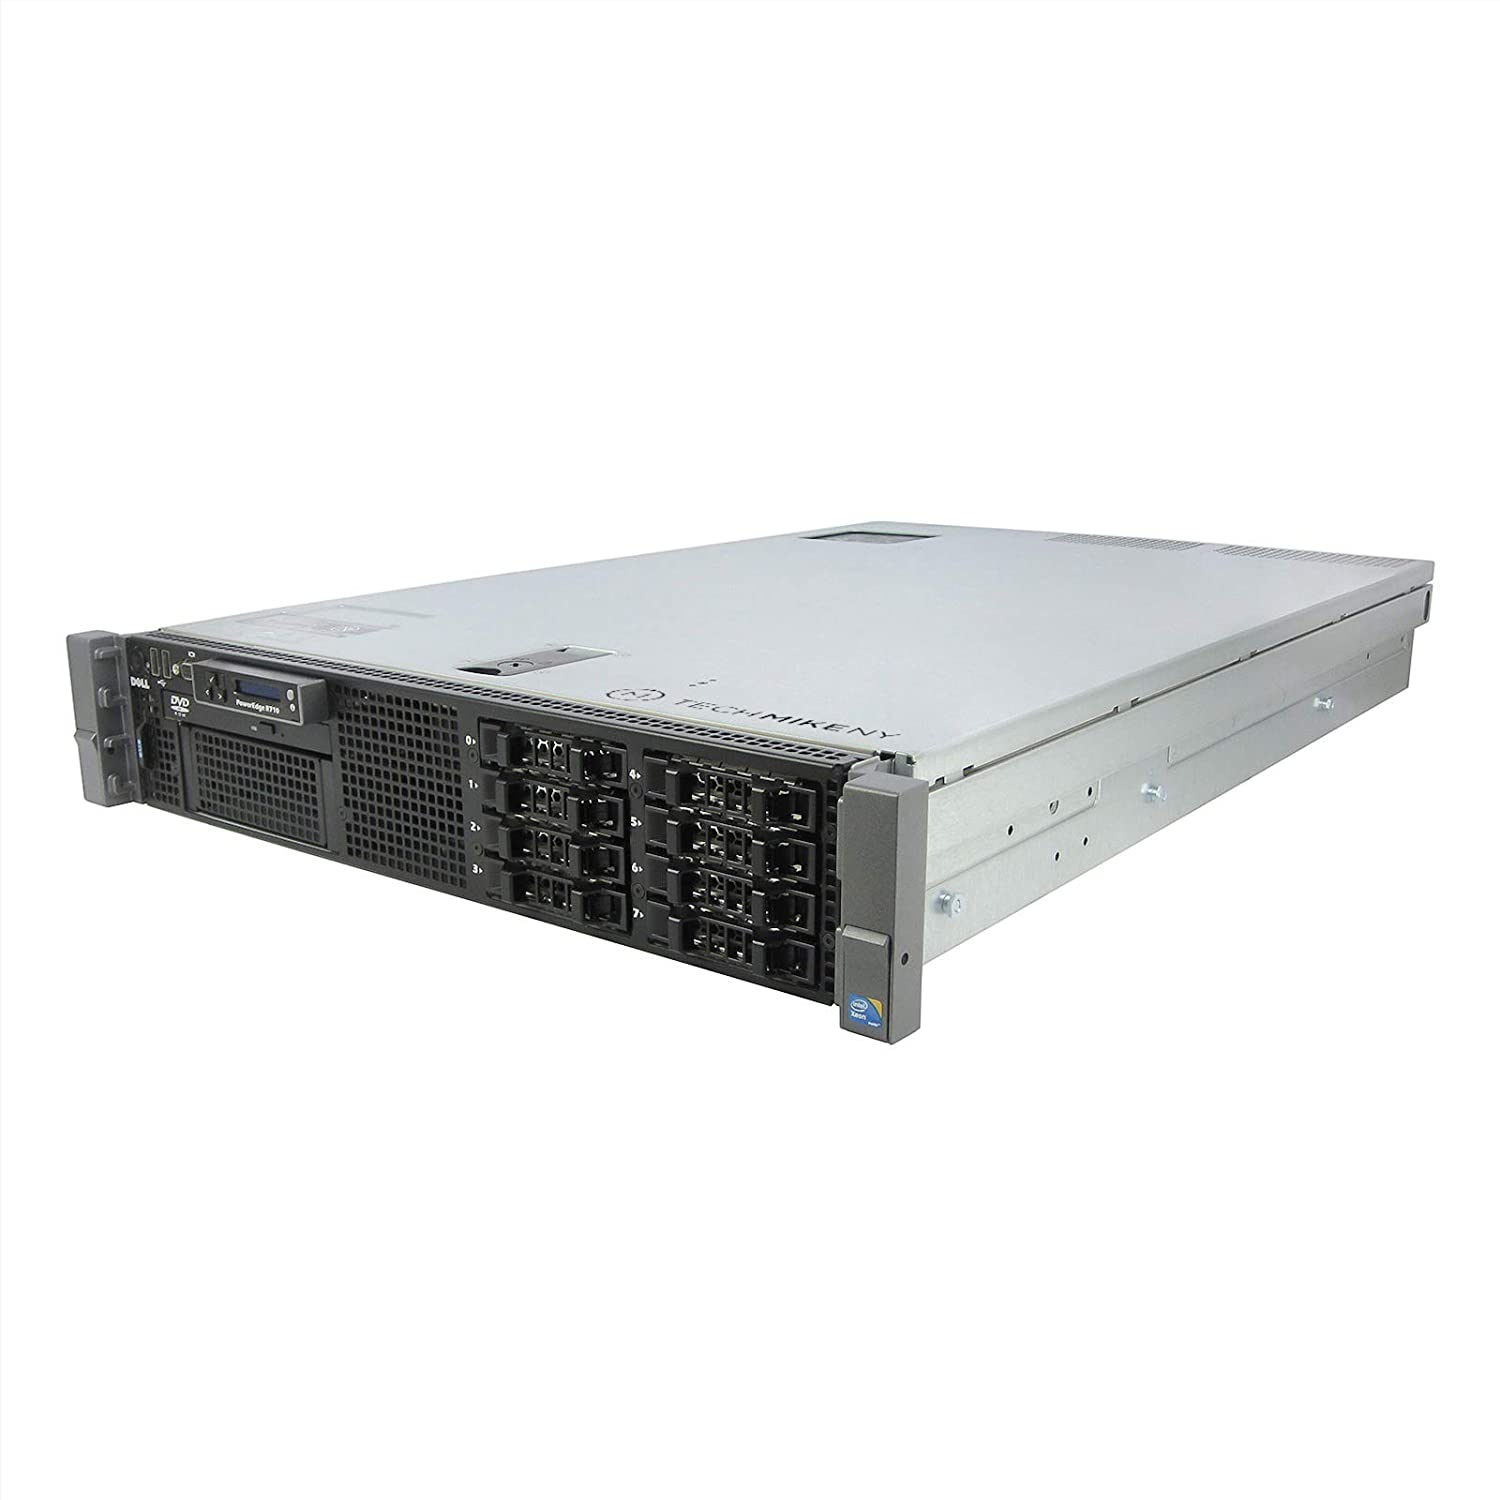 DELL PowerEdge R710 Server 2X 2.40Ghz E5645 6C 64GB 2X 1TB Mid-Level (Certified Refurbished) Dell Computers Dell PowerEdge R710 Gen II